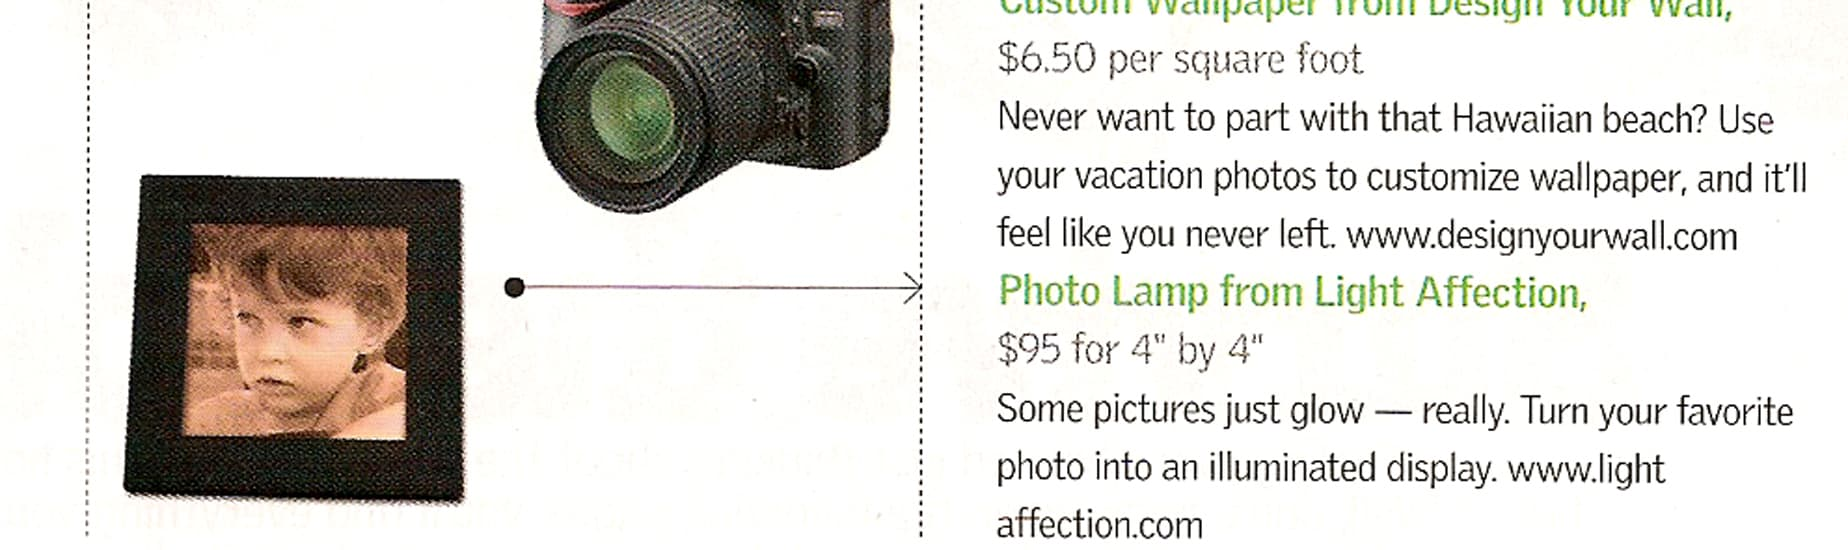 Light Affection in the American Airlines magazine